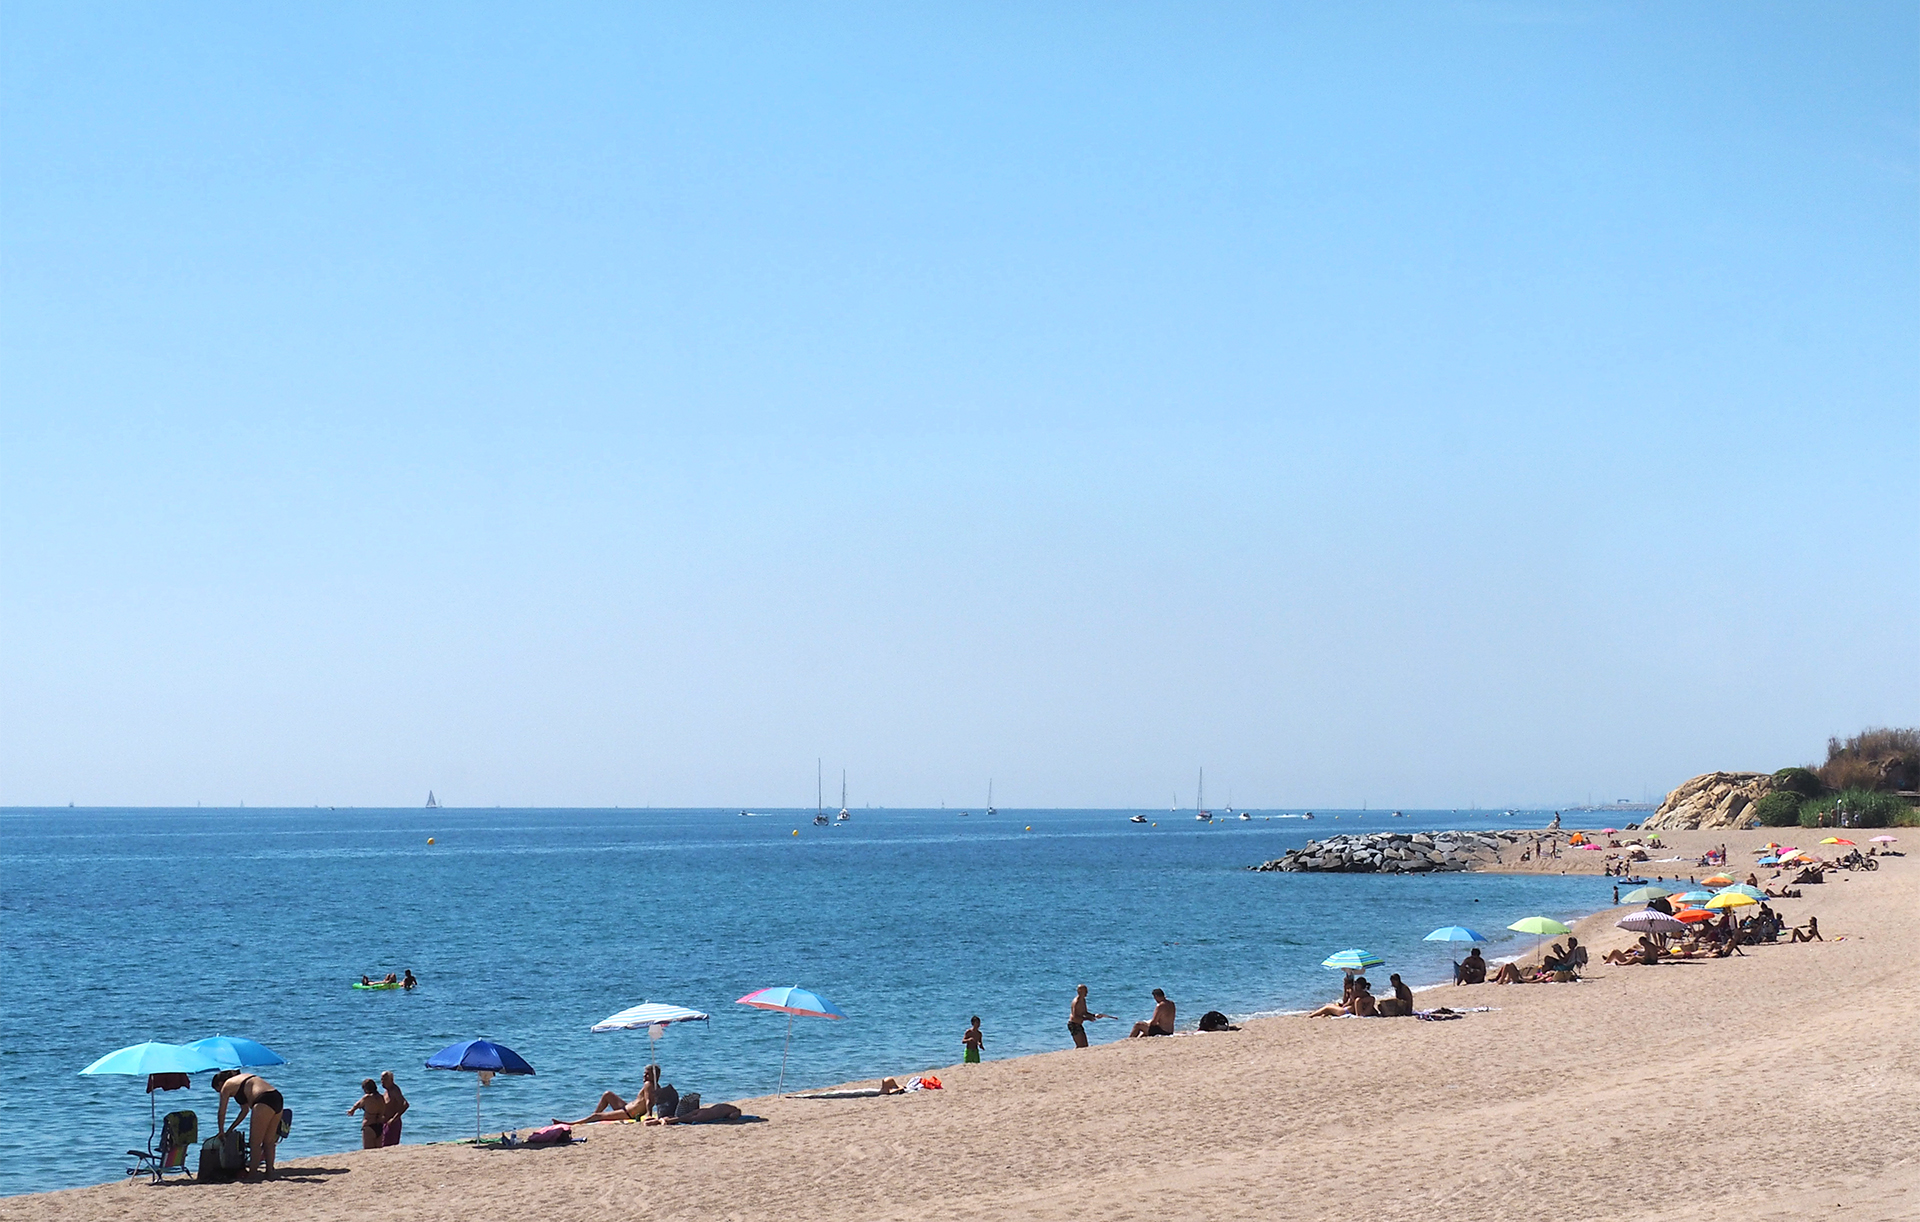 The beaches of Montgat are a 30 minutes from Barcelona by train. Choosing one of the endless beaches of Costa Brava will be your most difficult decision of the day.